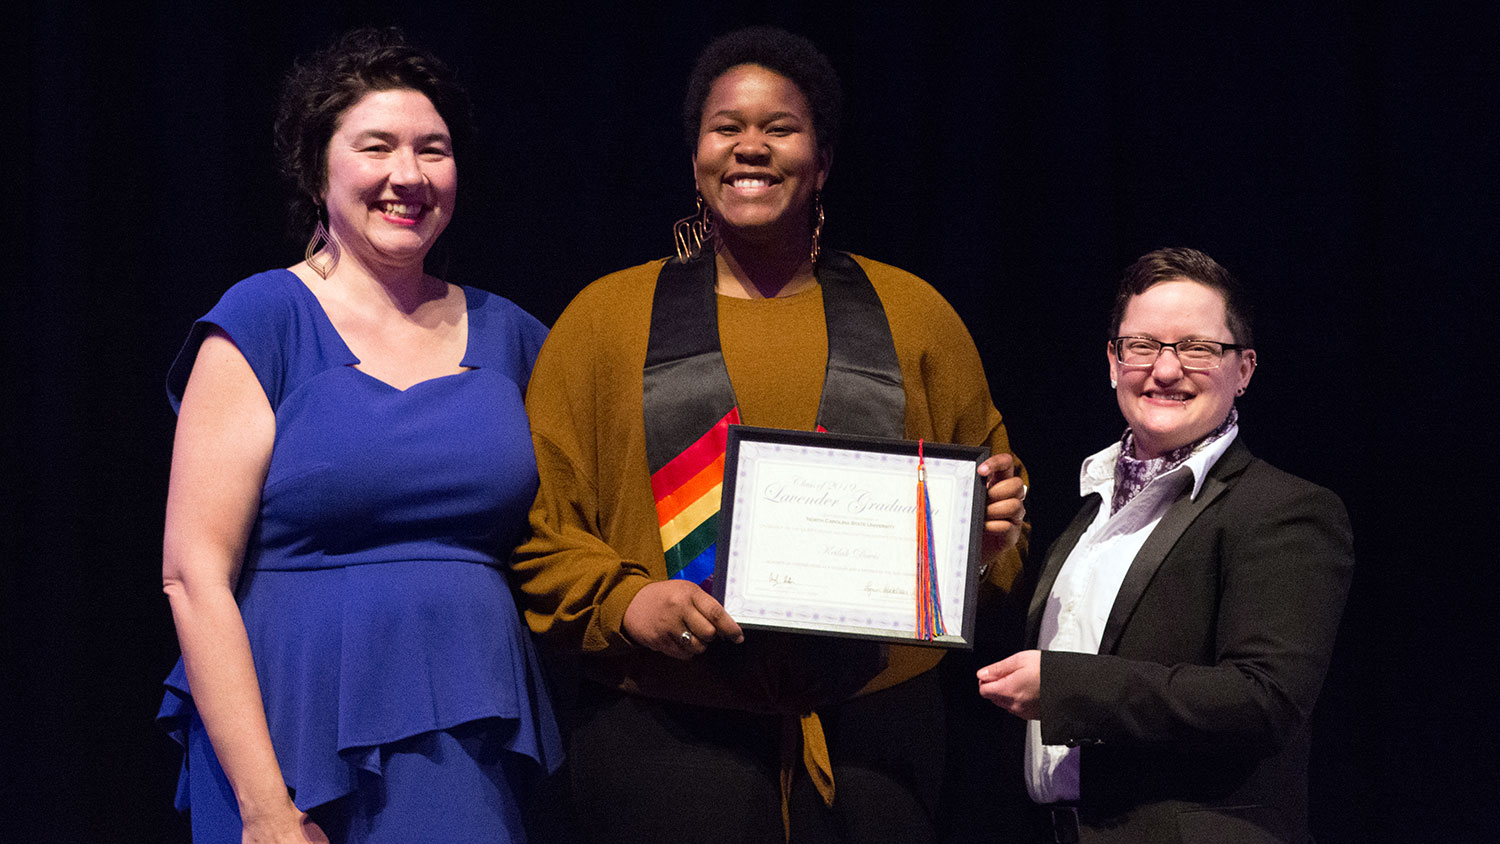 Lavender Graduation speaker and graduate Keilah Davis with Lynn Locklear-Fisher and Andy DeRoin